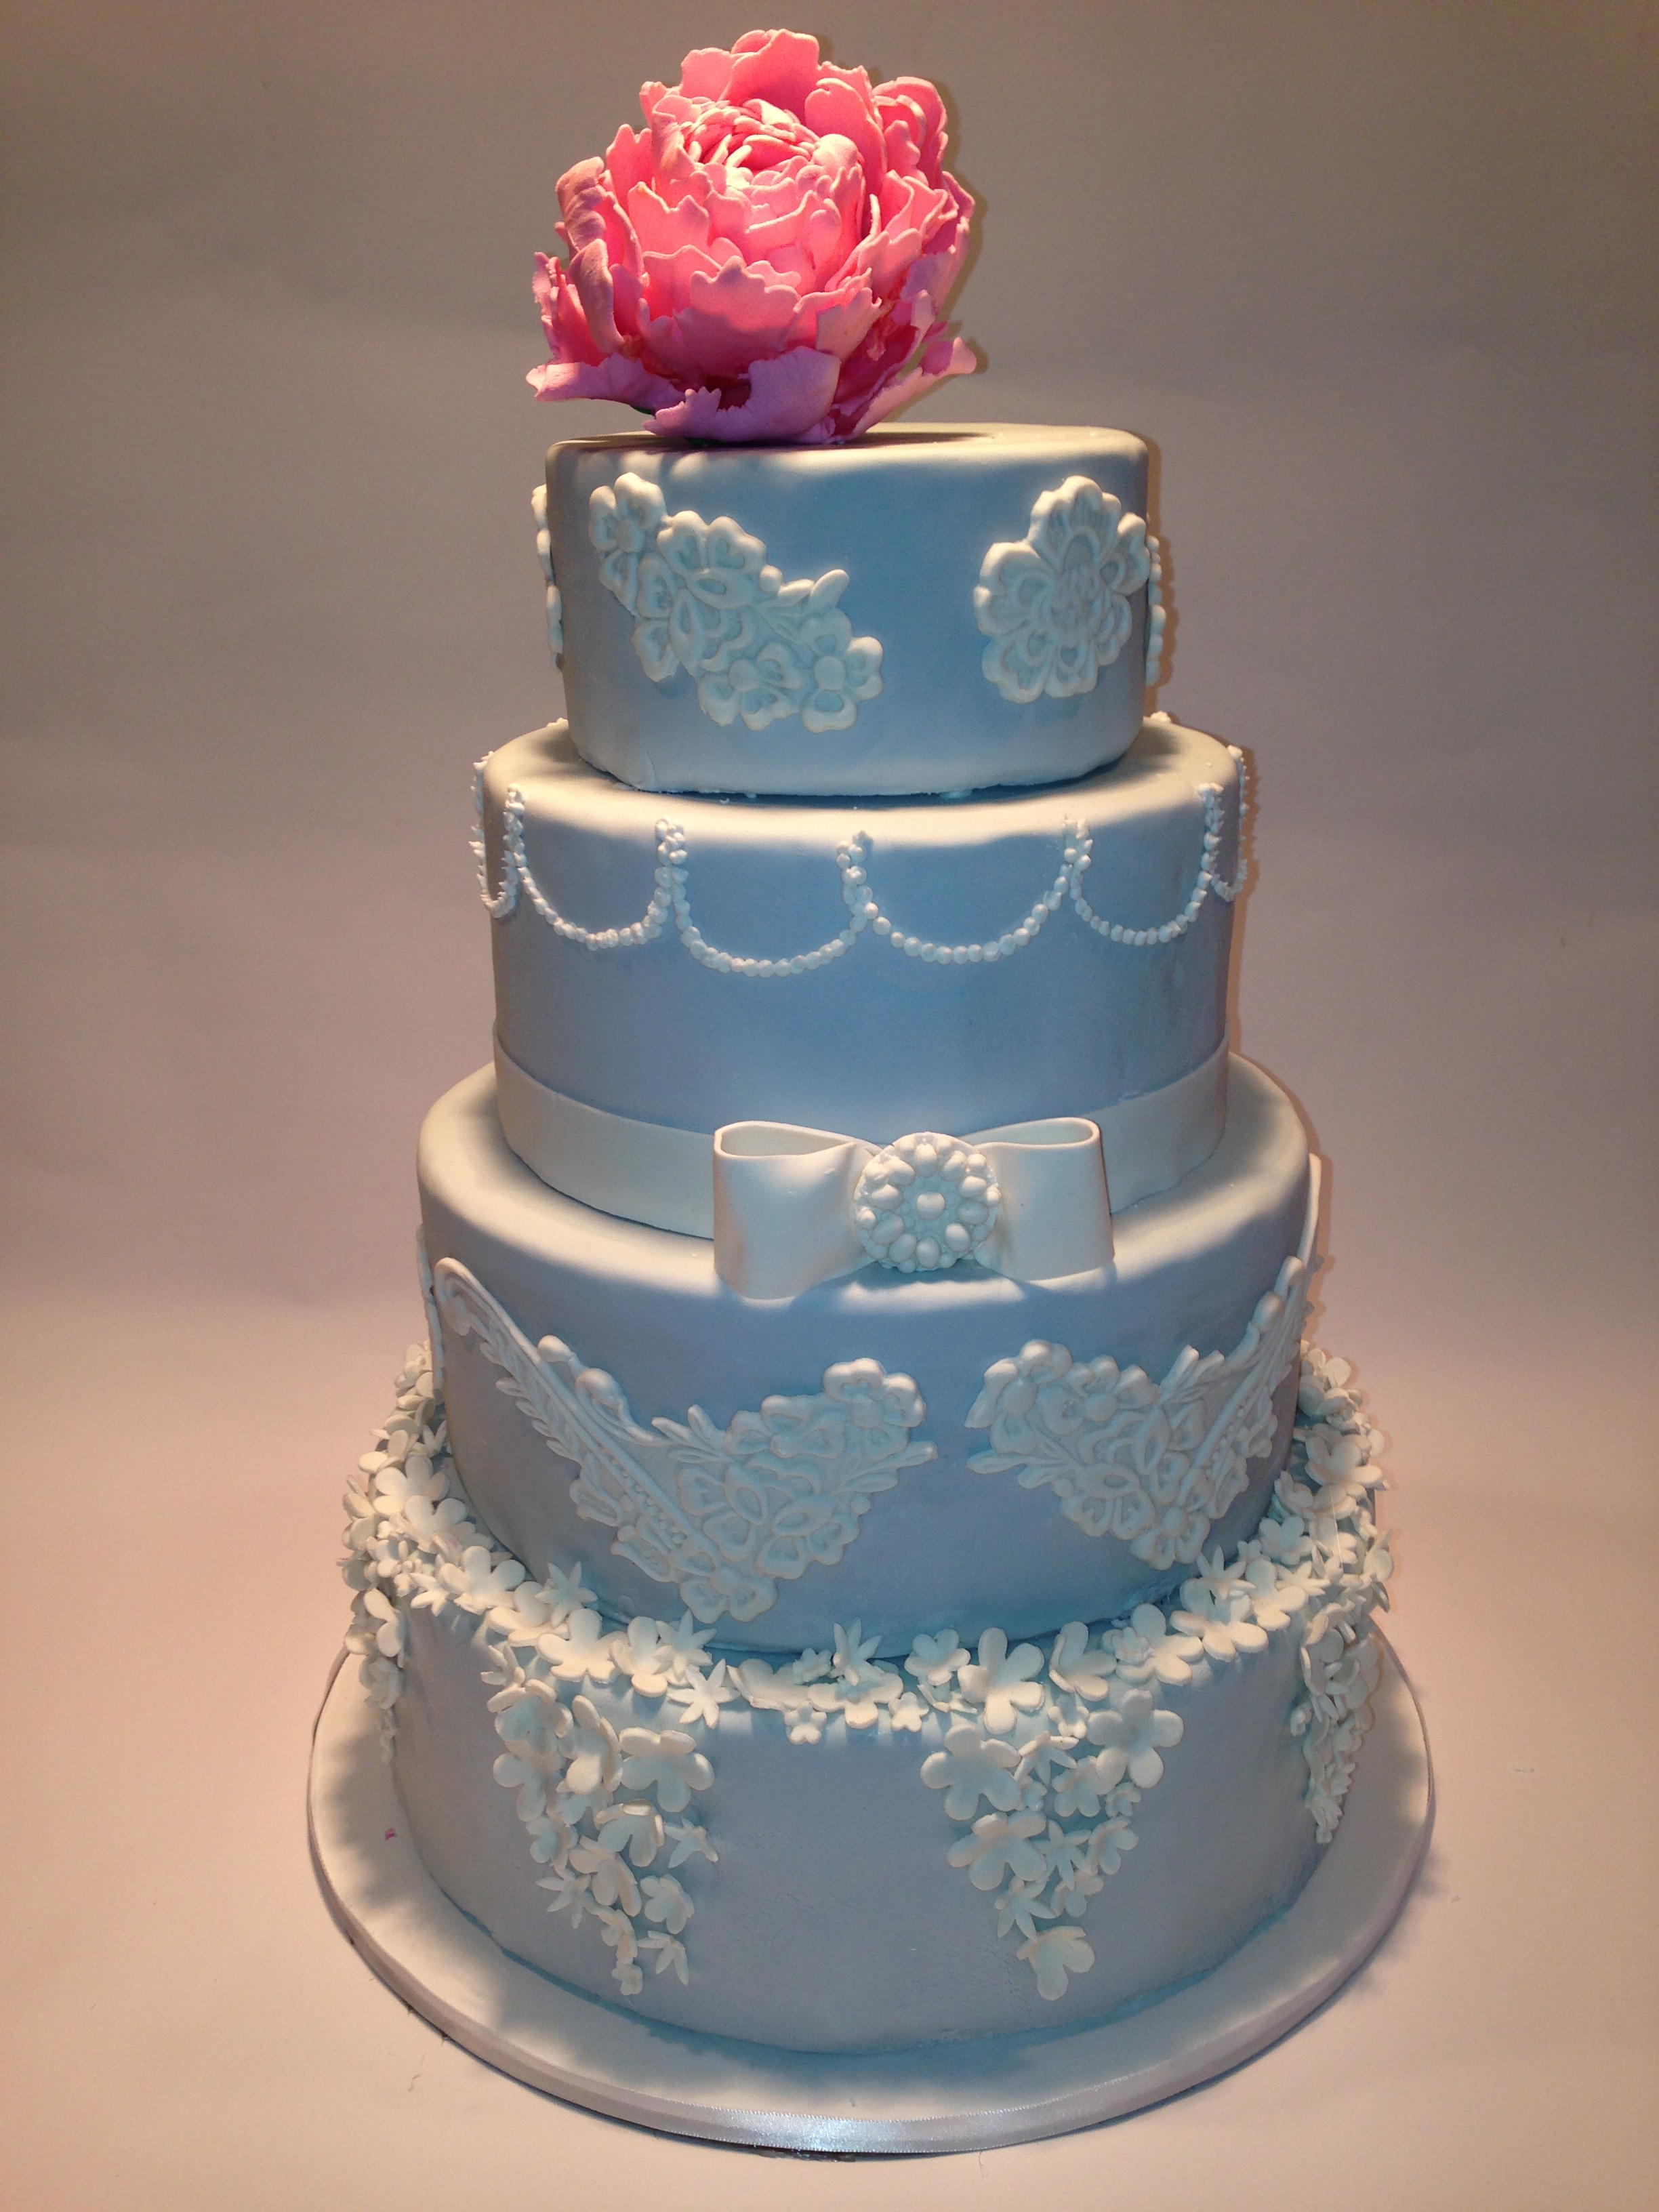 Wedgewood China inspired cake